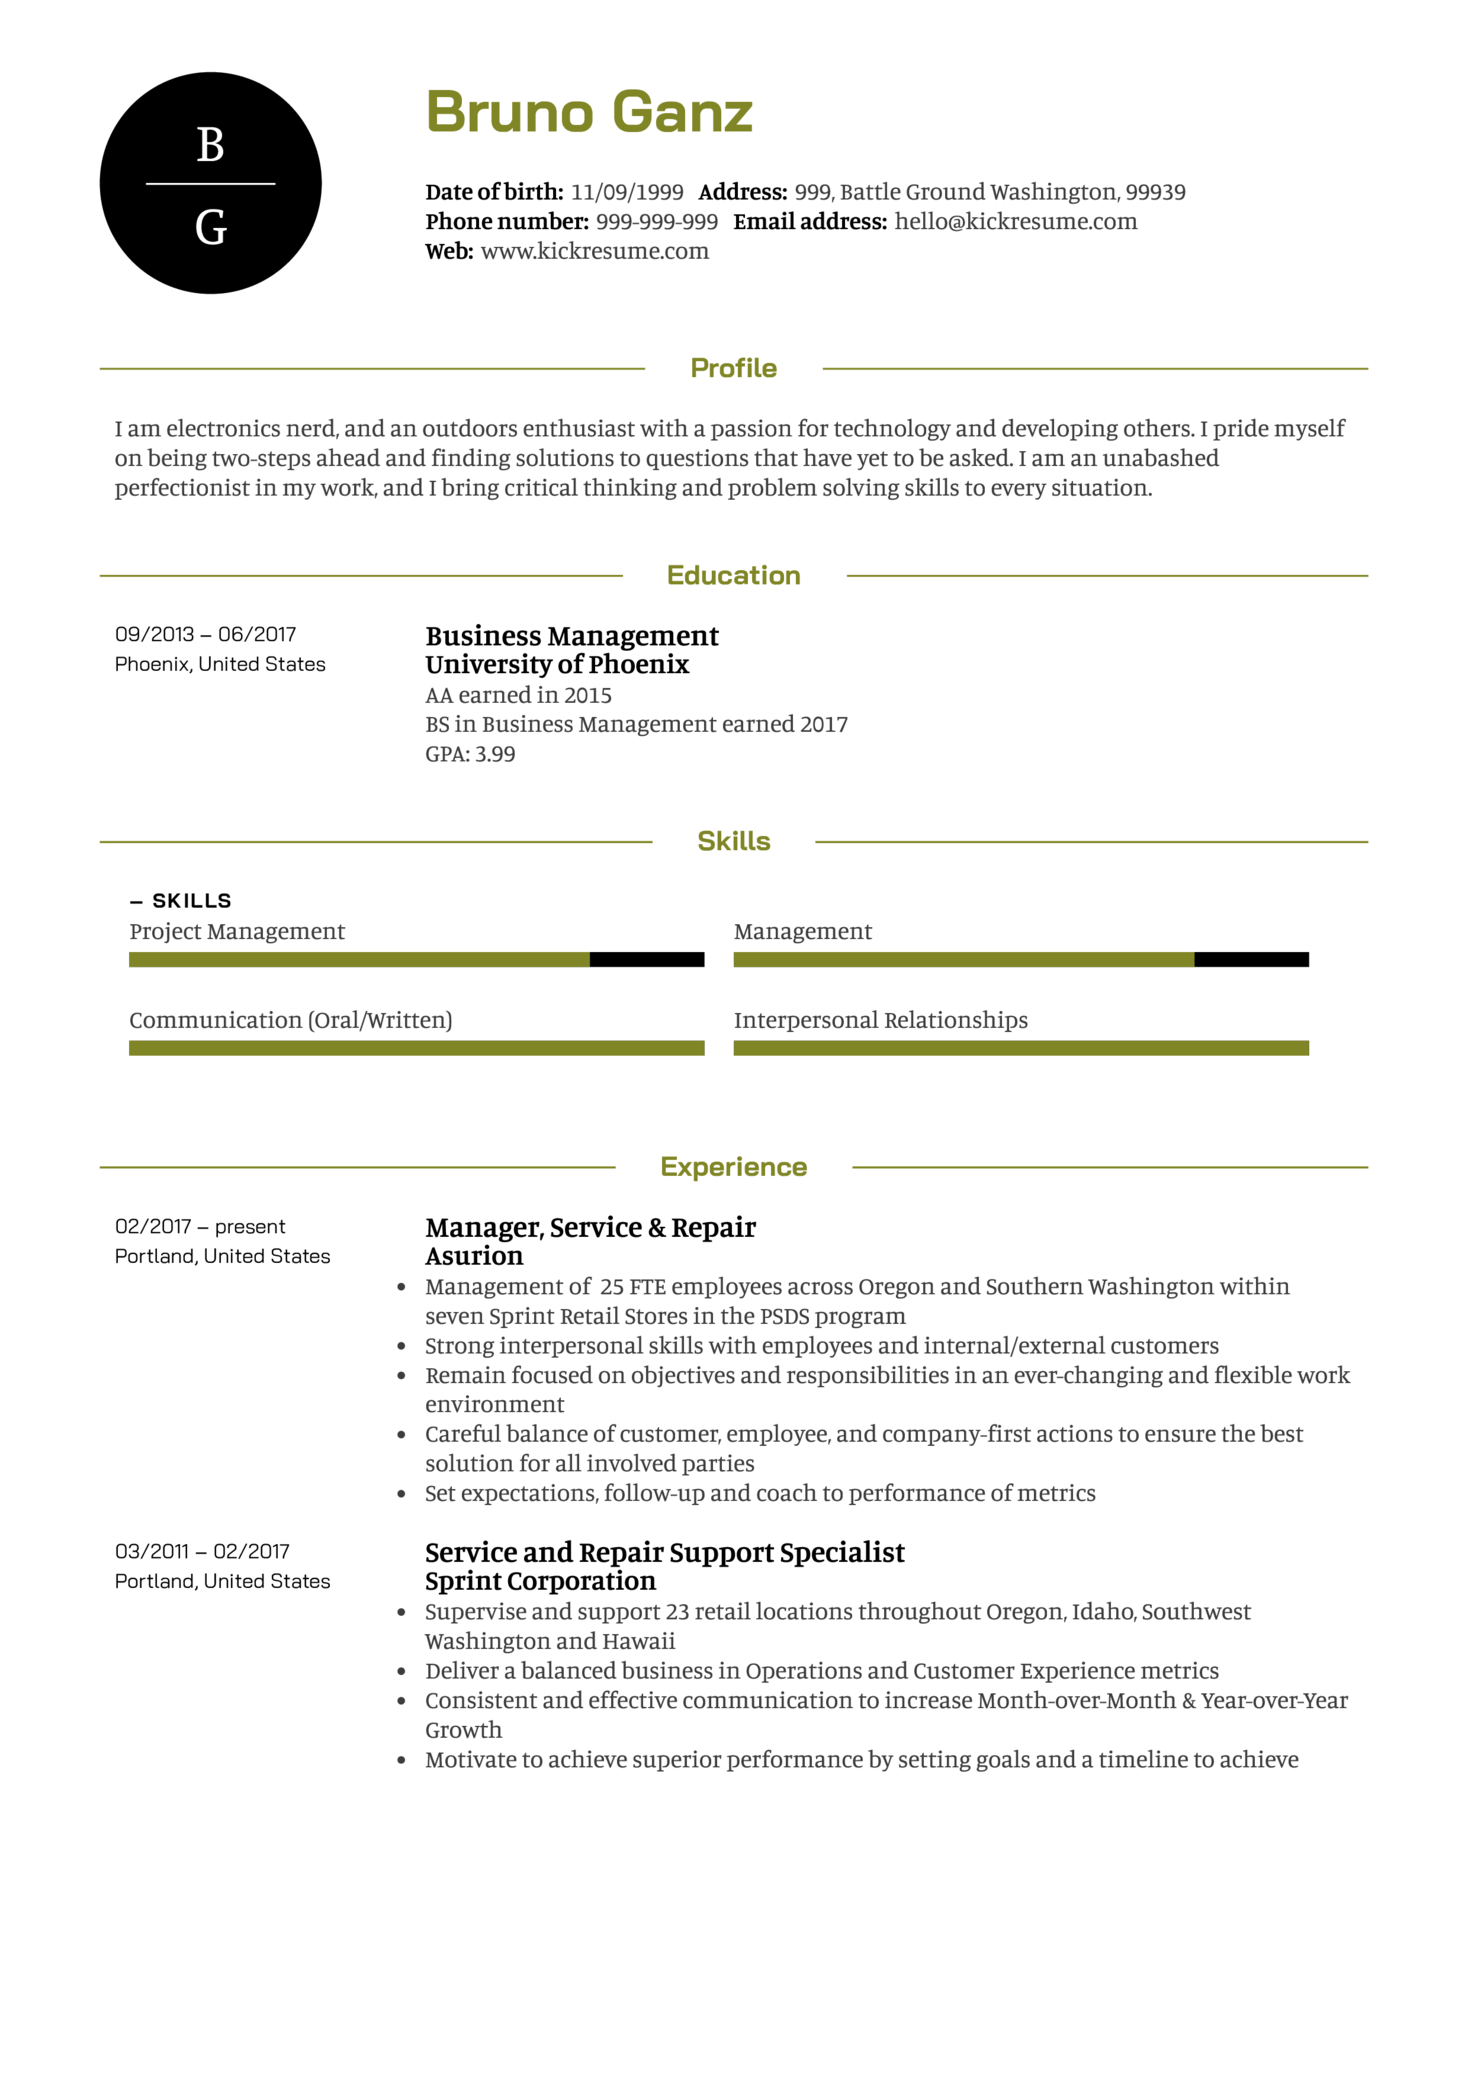 Senior Project Manager Resume Example (Parte 1)